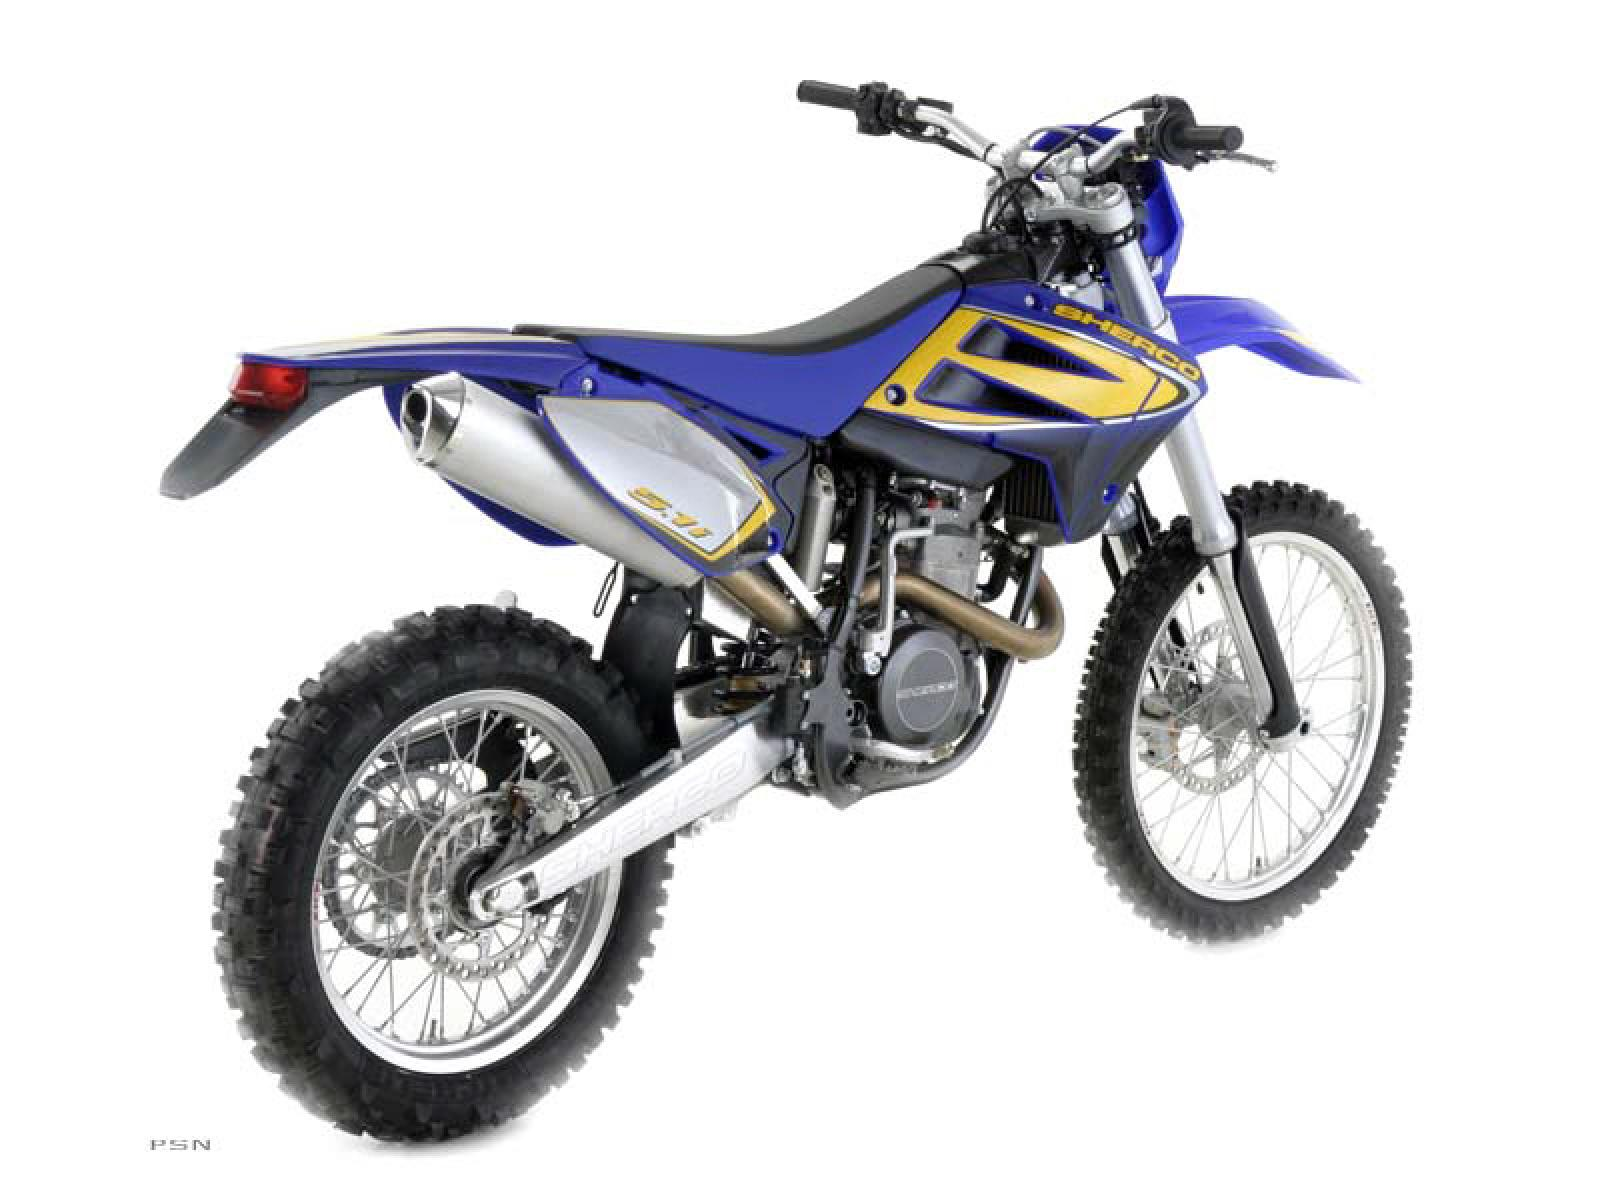 Sherco 5.1i 4T Supermotard 2007 images #124383